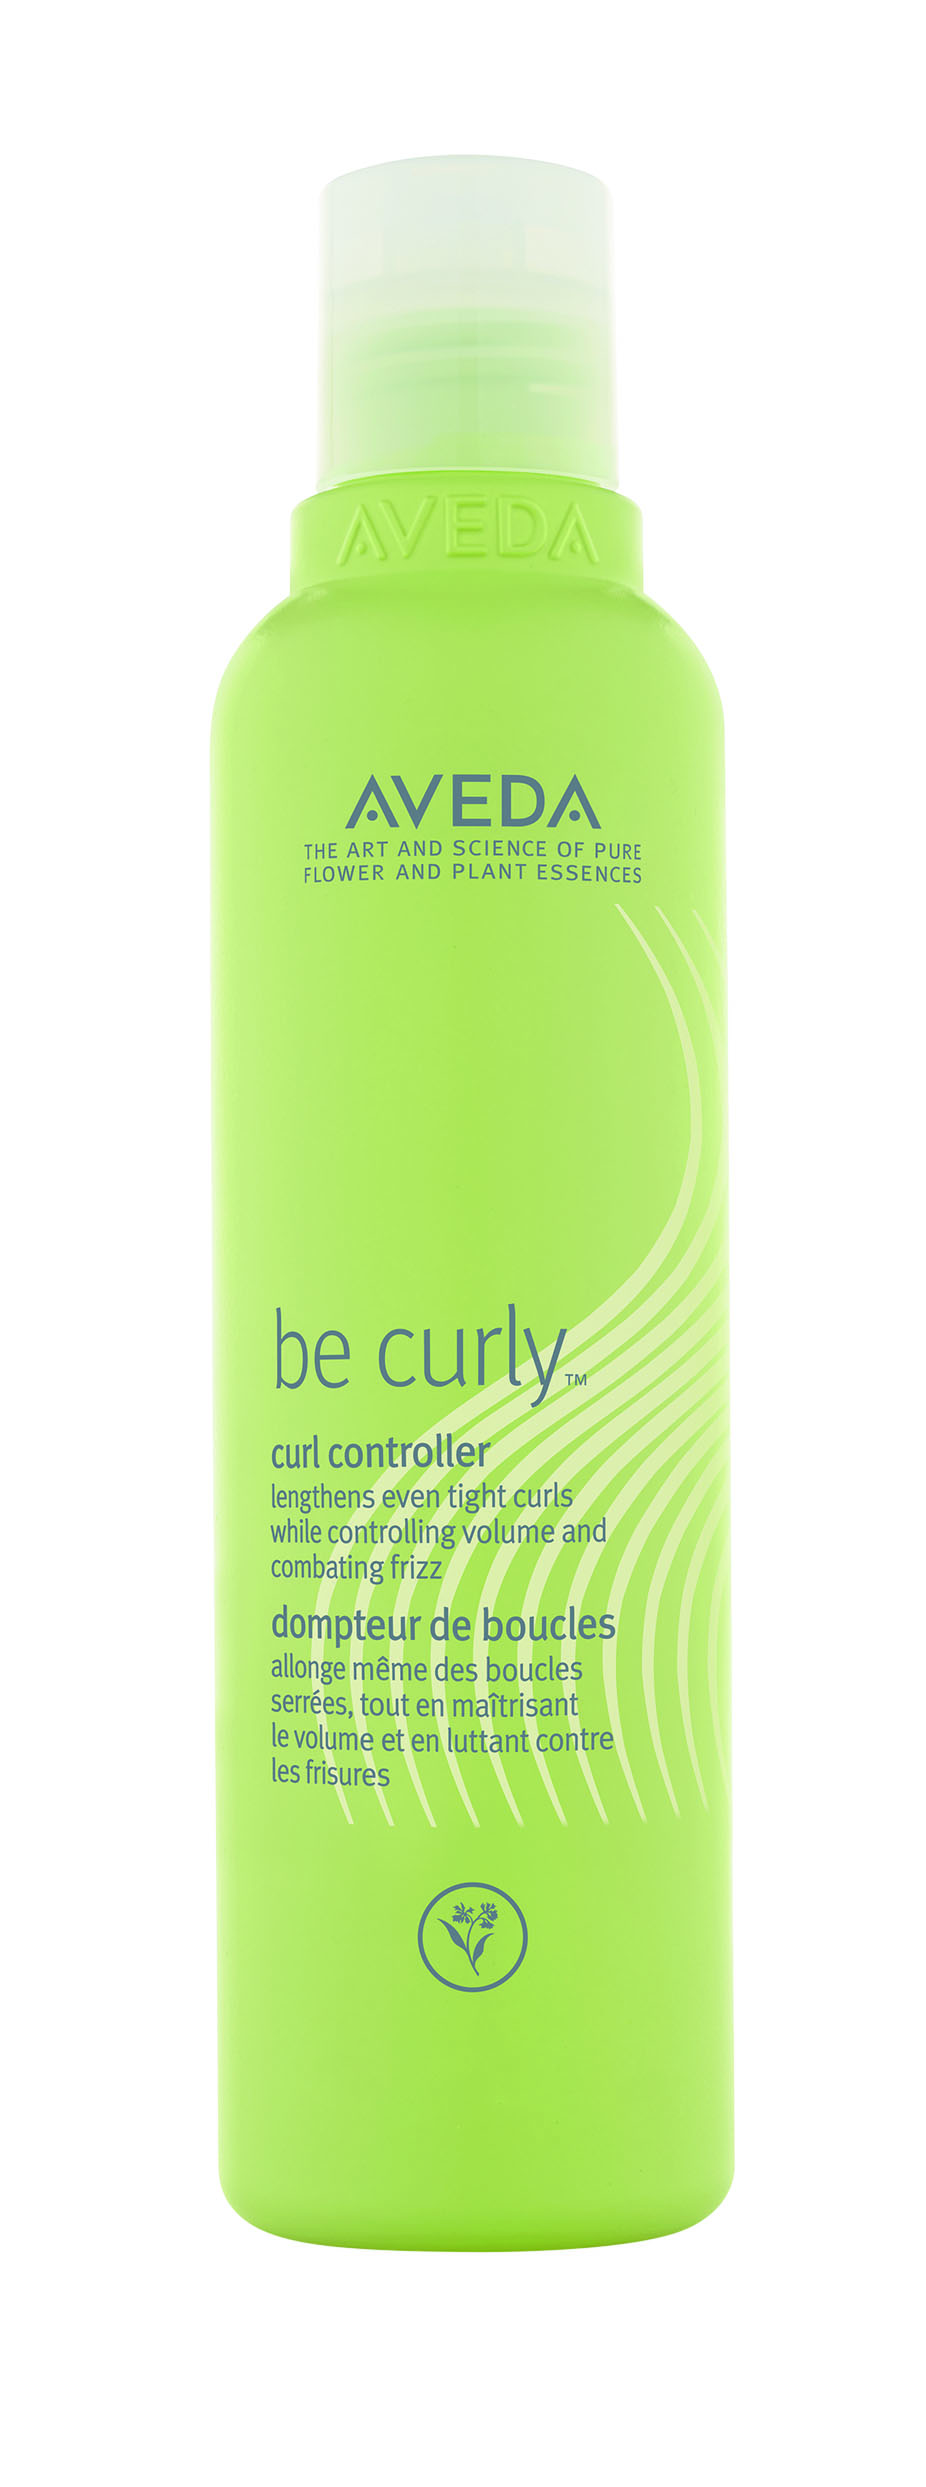 Aveda Be Curly Curl Controller combats frizz while lengthening even the tightest curls.